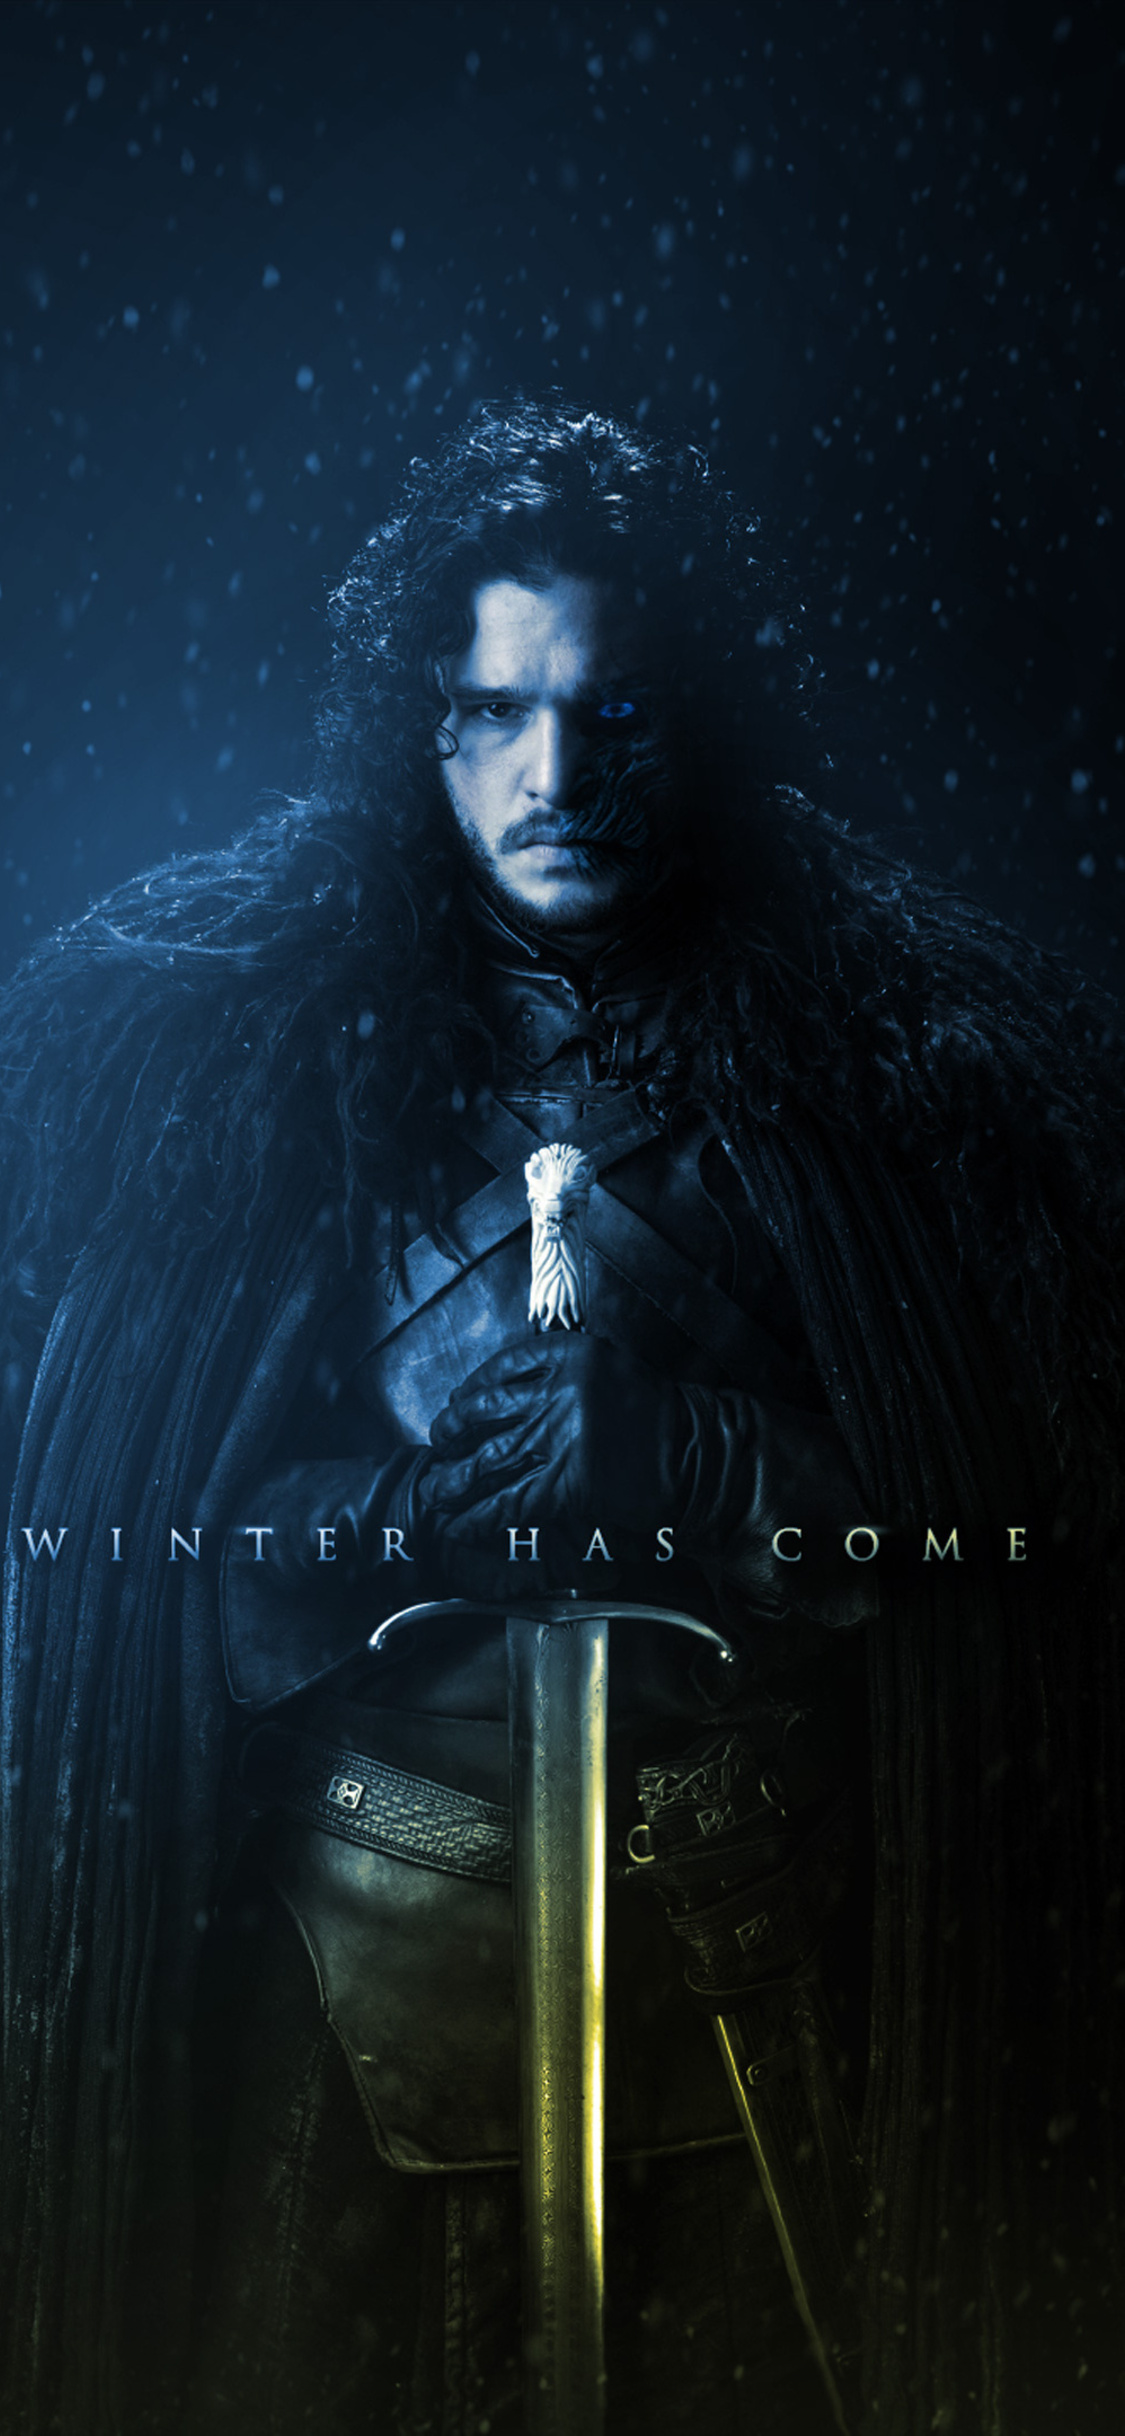 1125x2436 Game Of Thrones Winter Has Come Artwork 4k ...